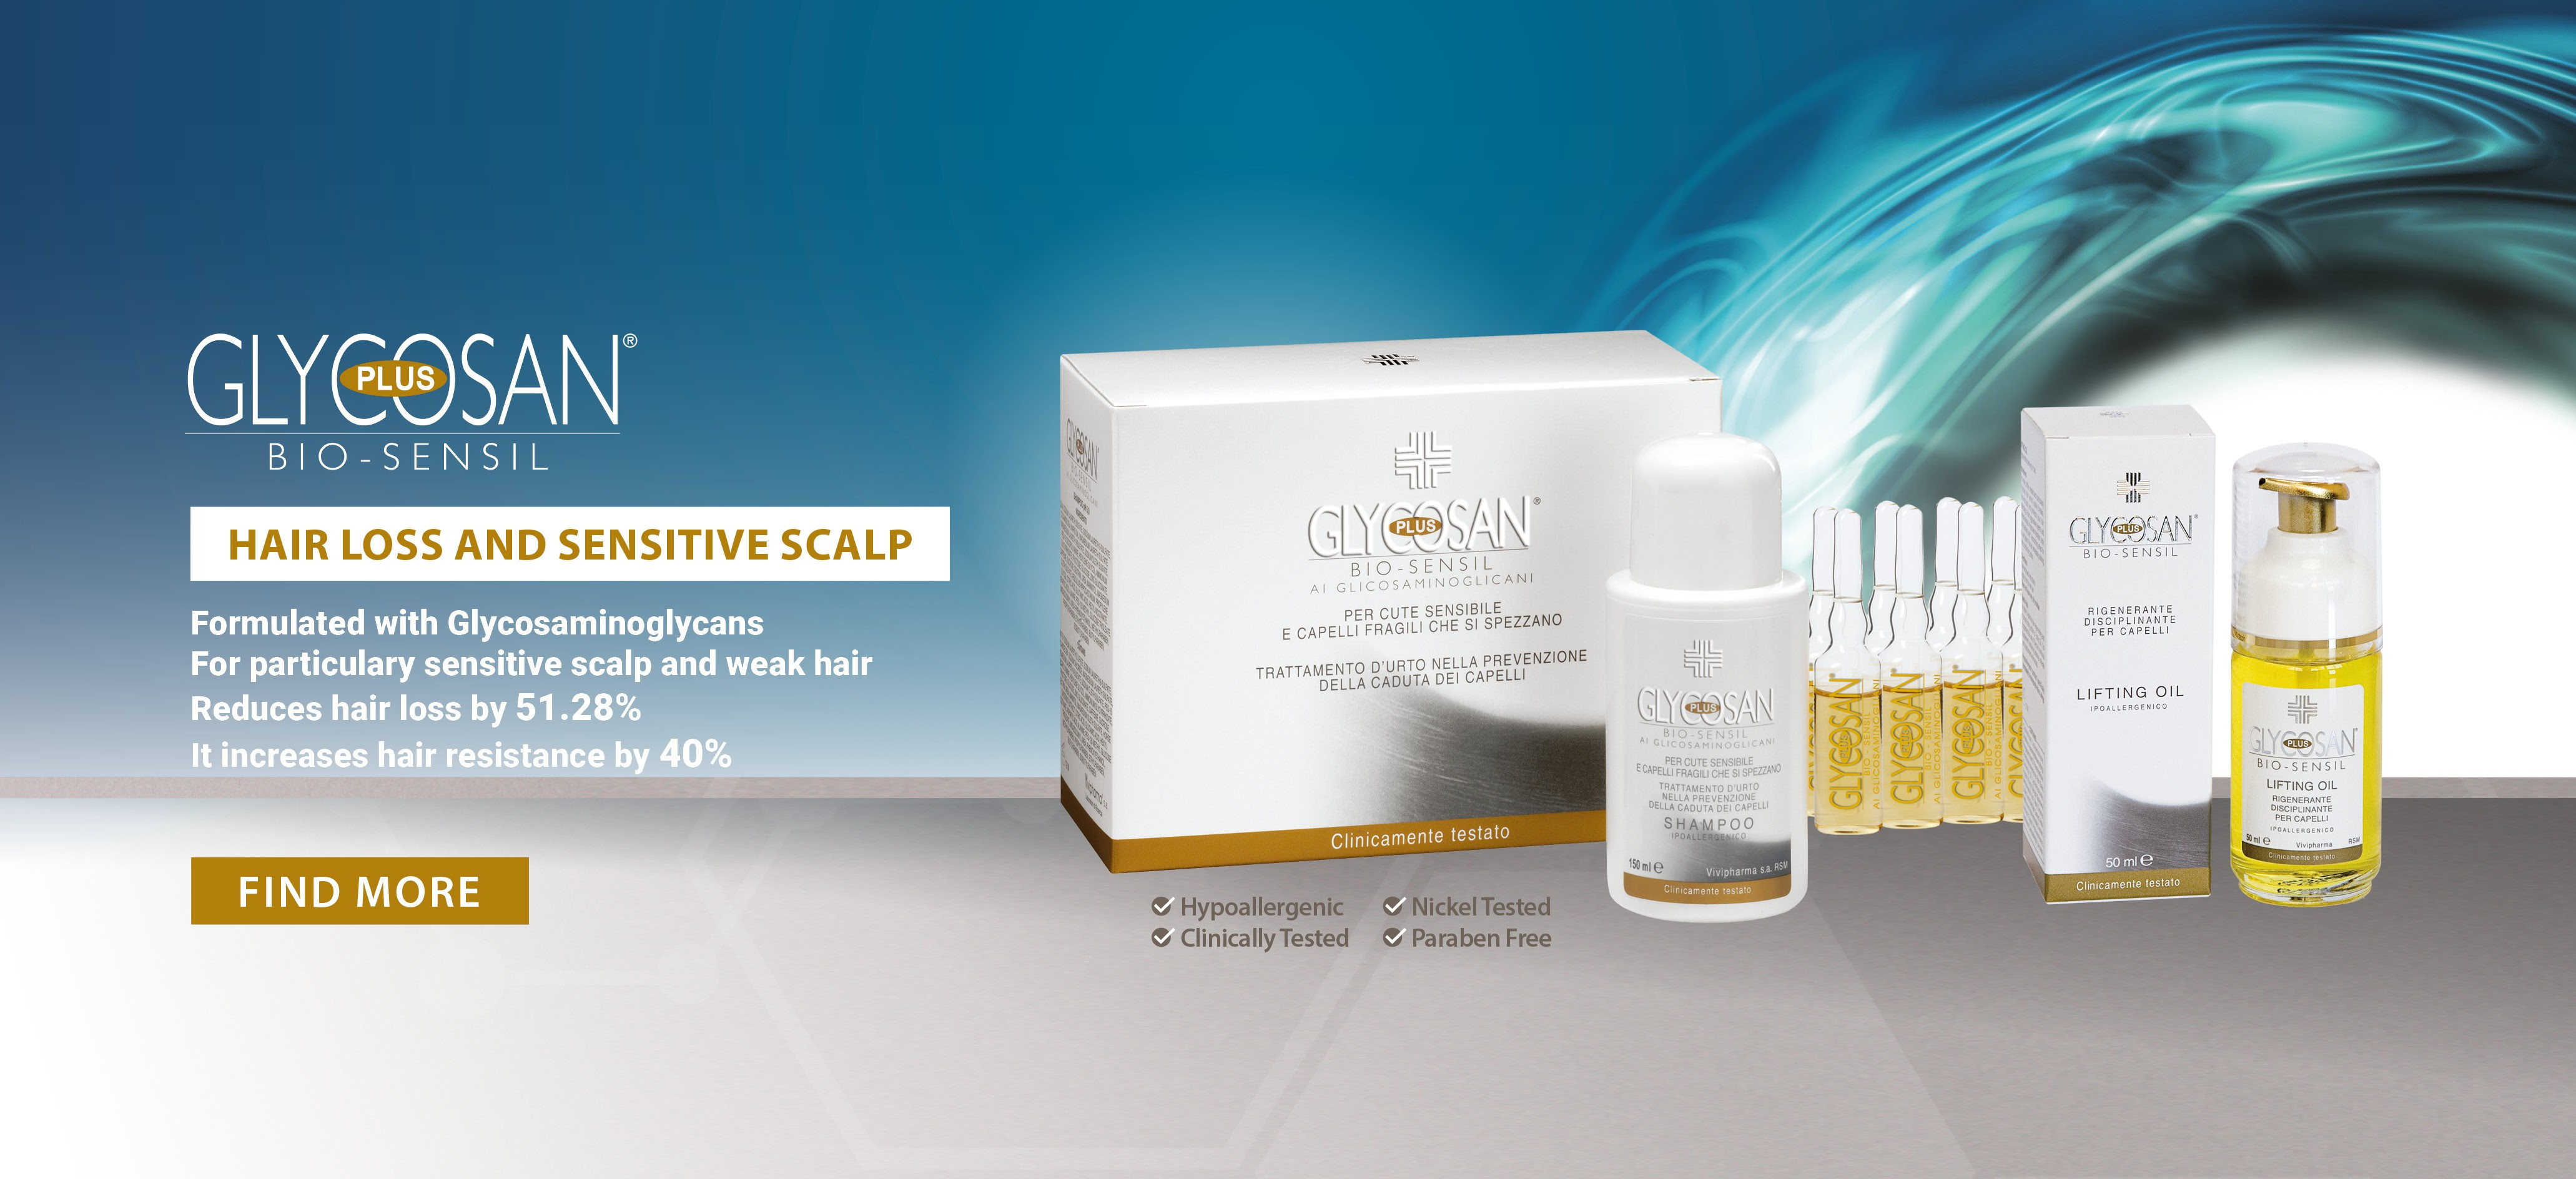 Glycosan_Plus_Hair_Loss_and_Sensitive_Scalp